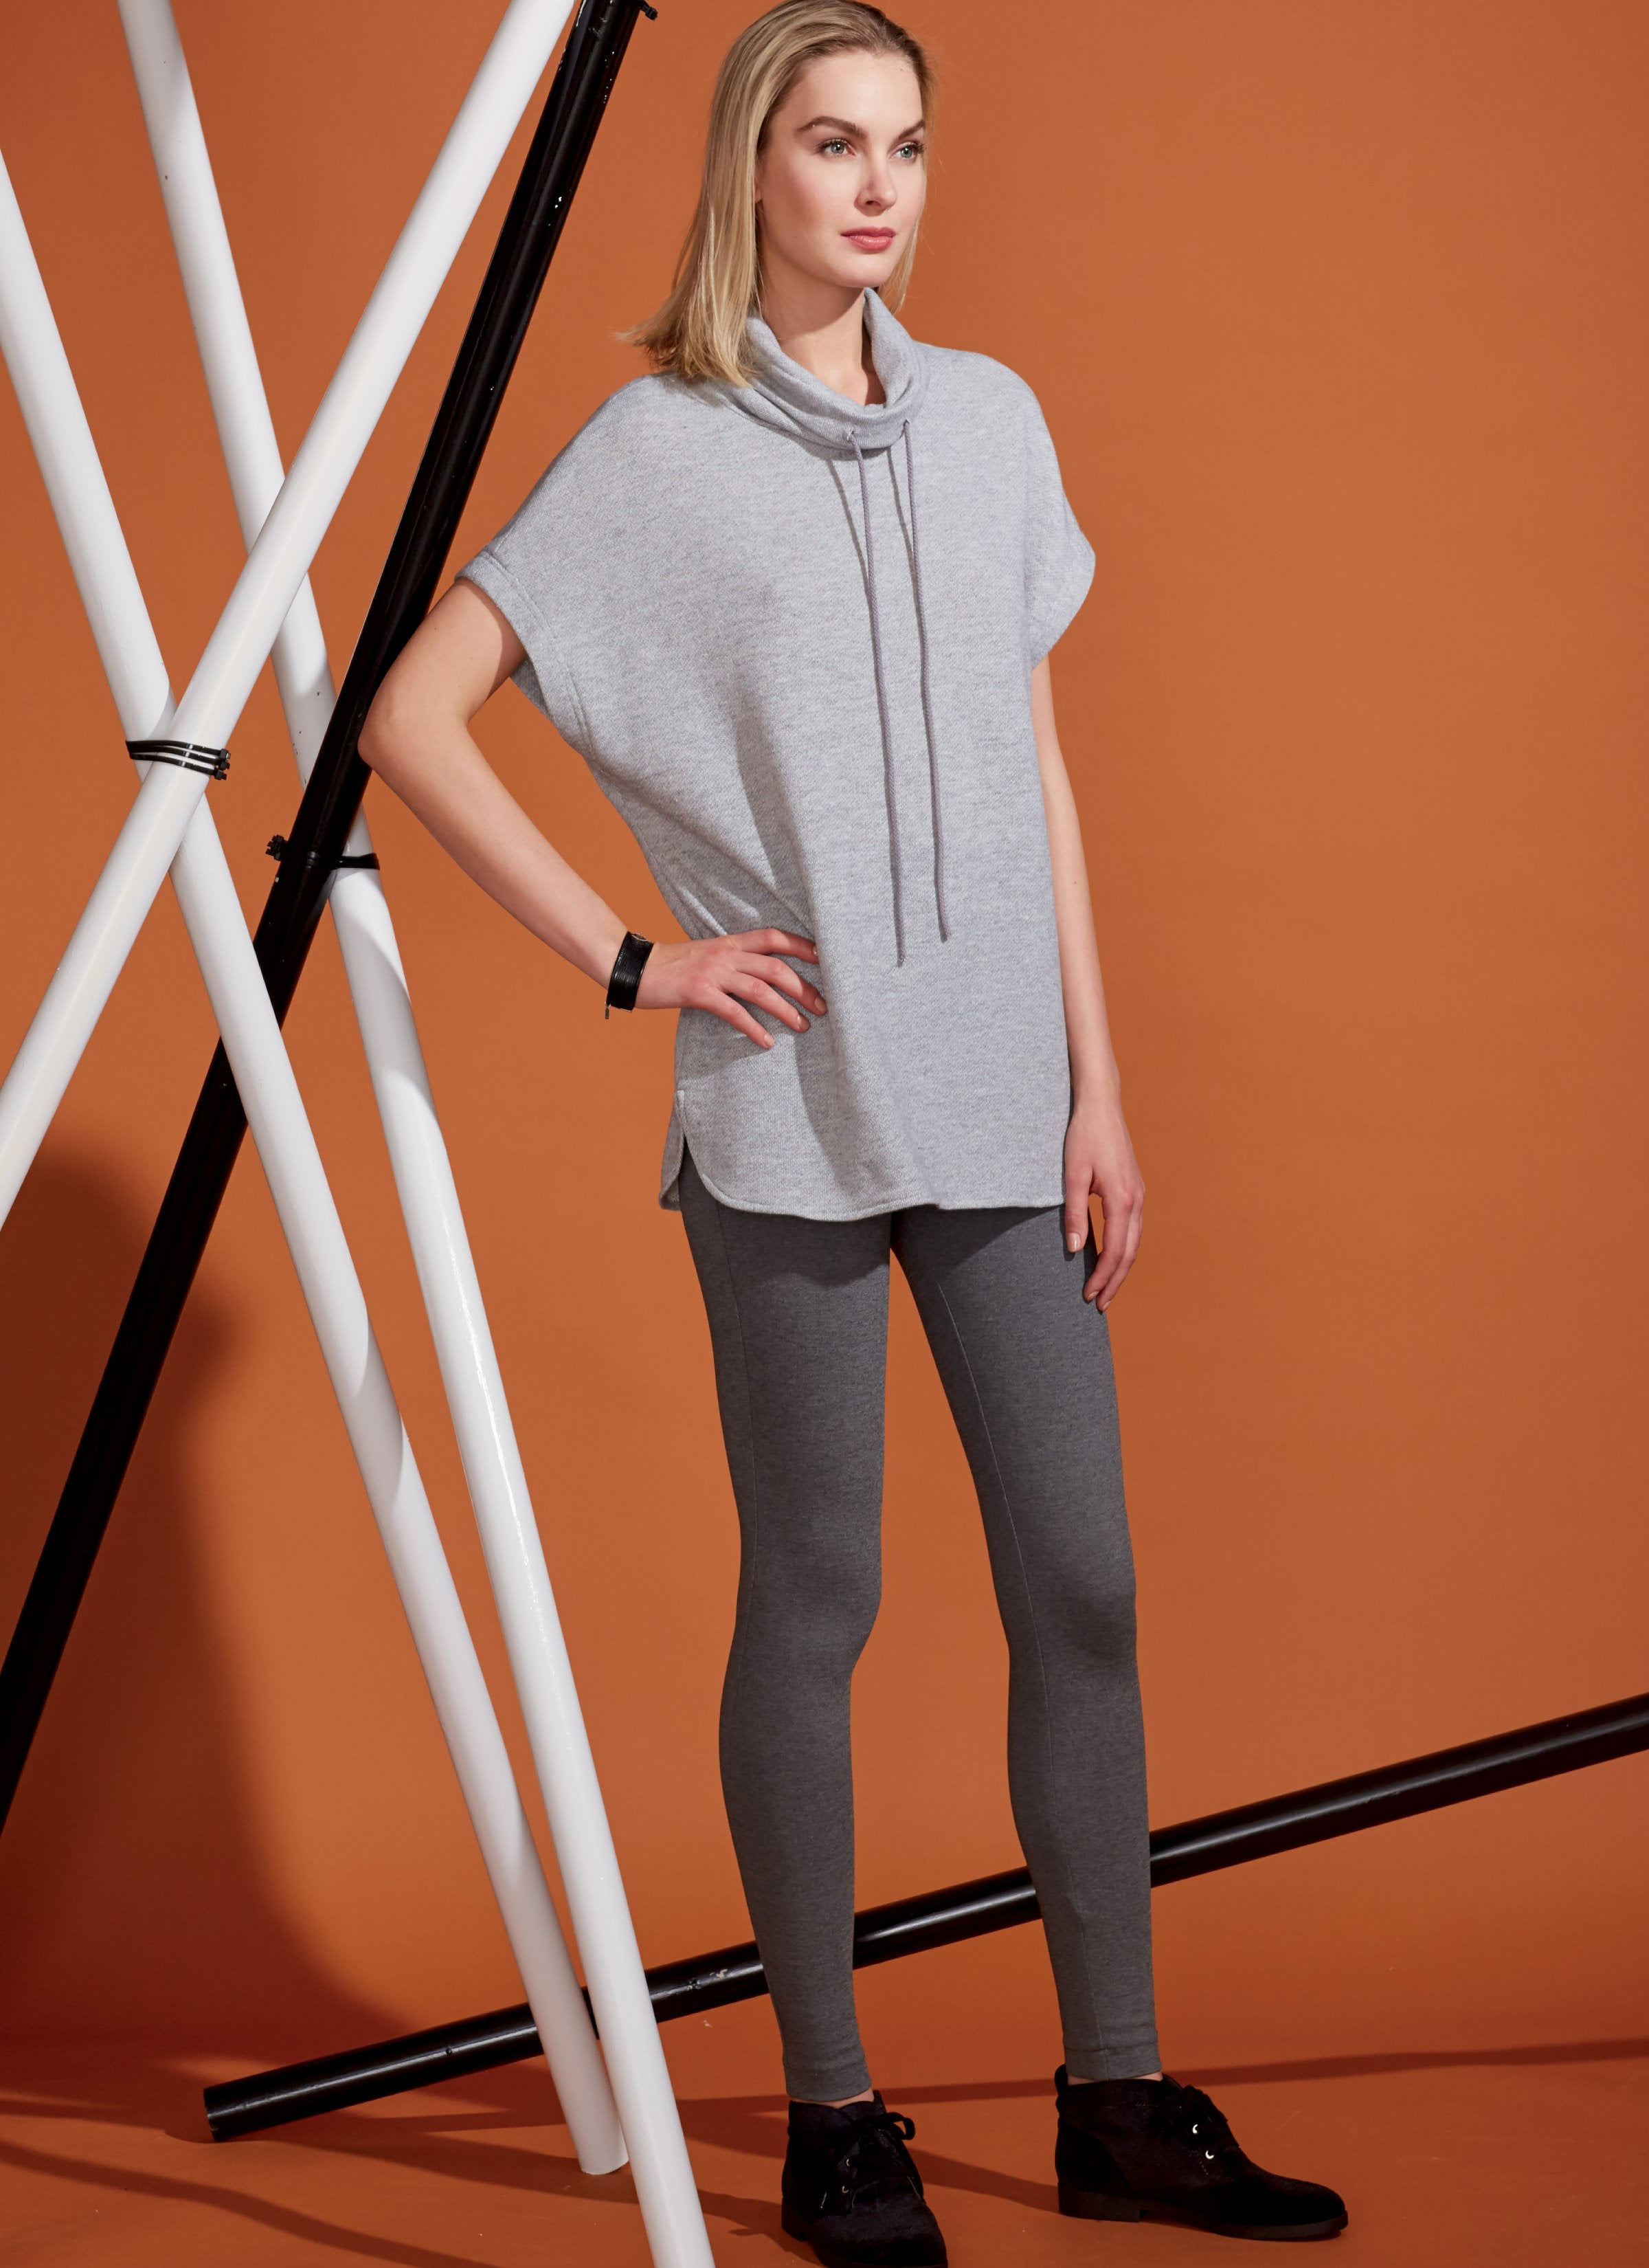 V9275 Misses' Lined Zip Jacket, Knit Tunic, Leggings, and Pants